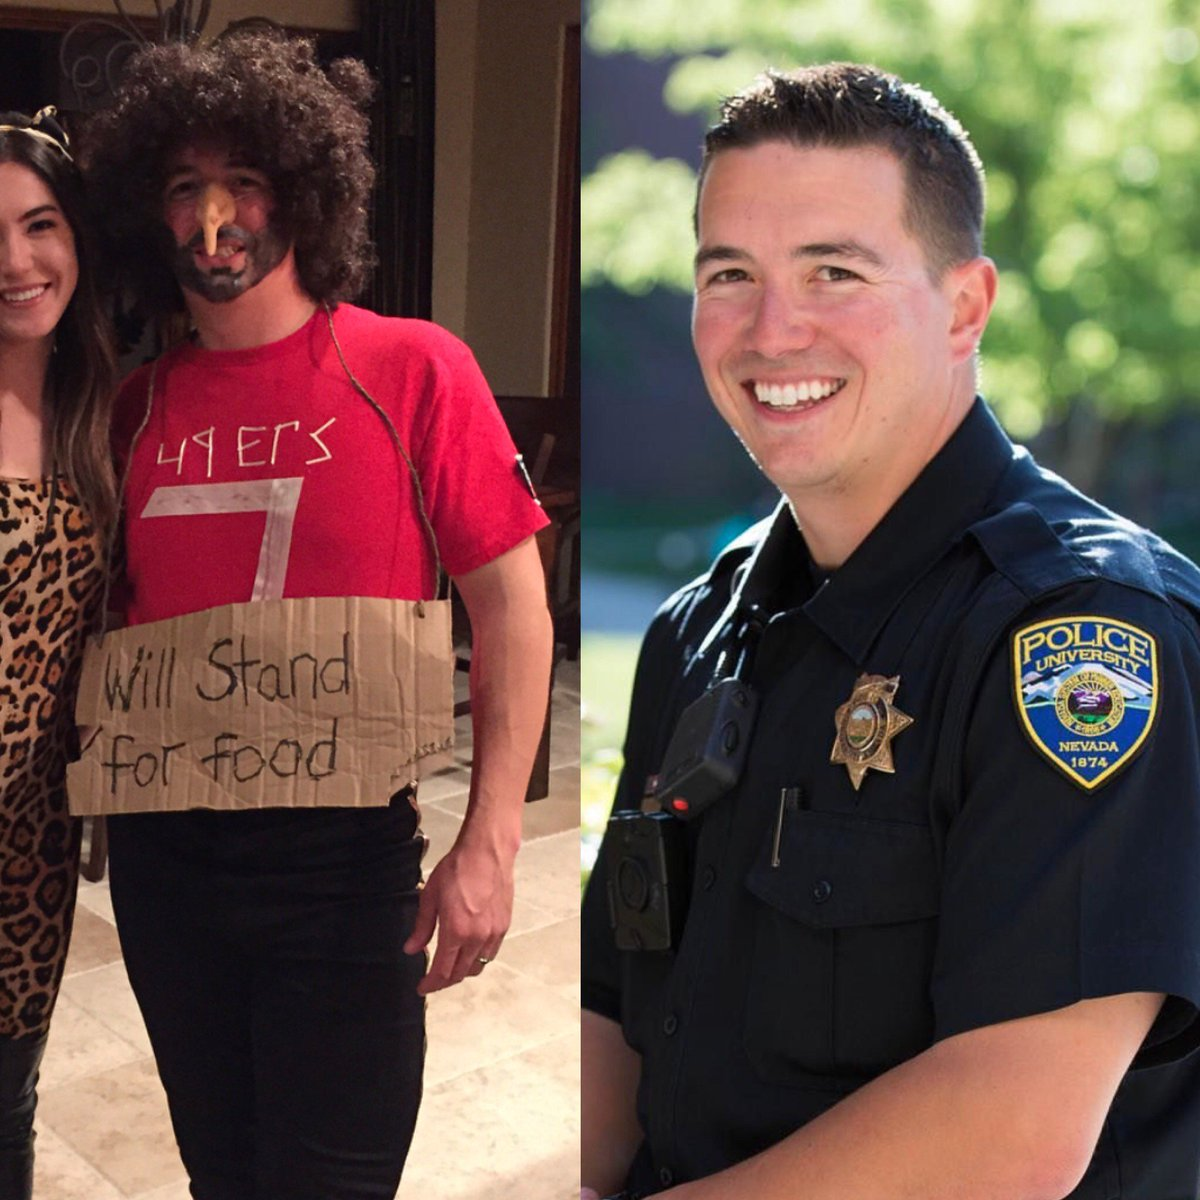 Police Officer's 'Racist' Colin Kaepernick Costume Did Not Go Over Well